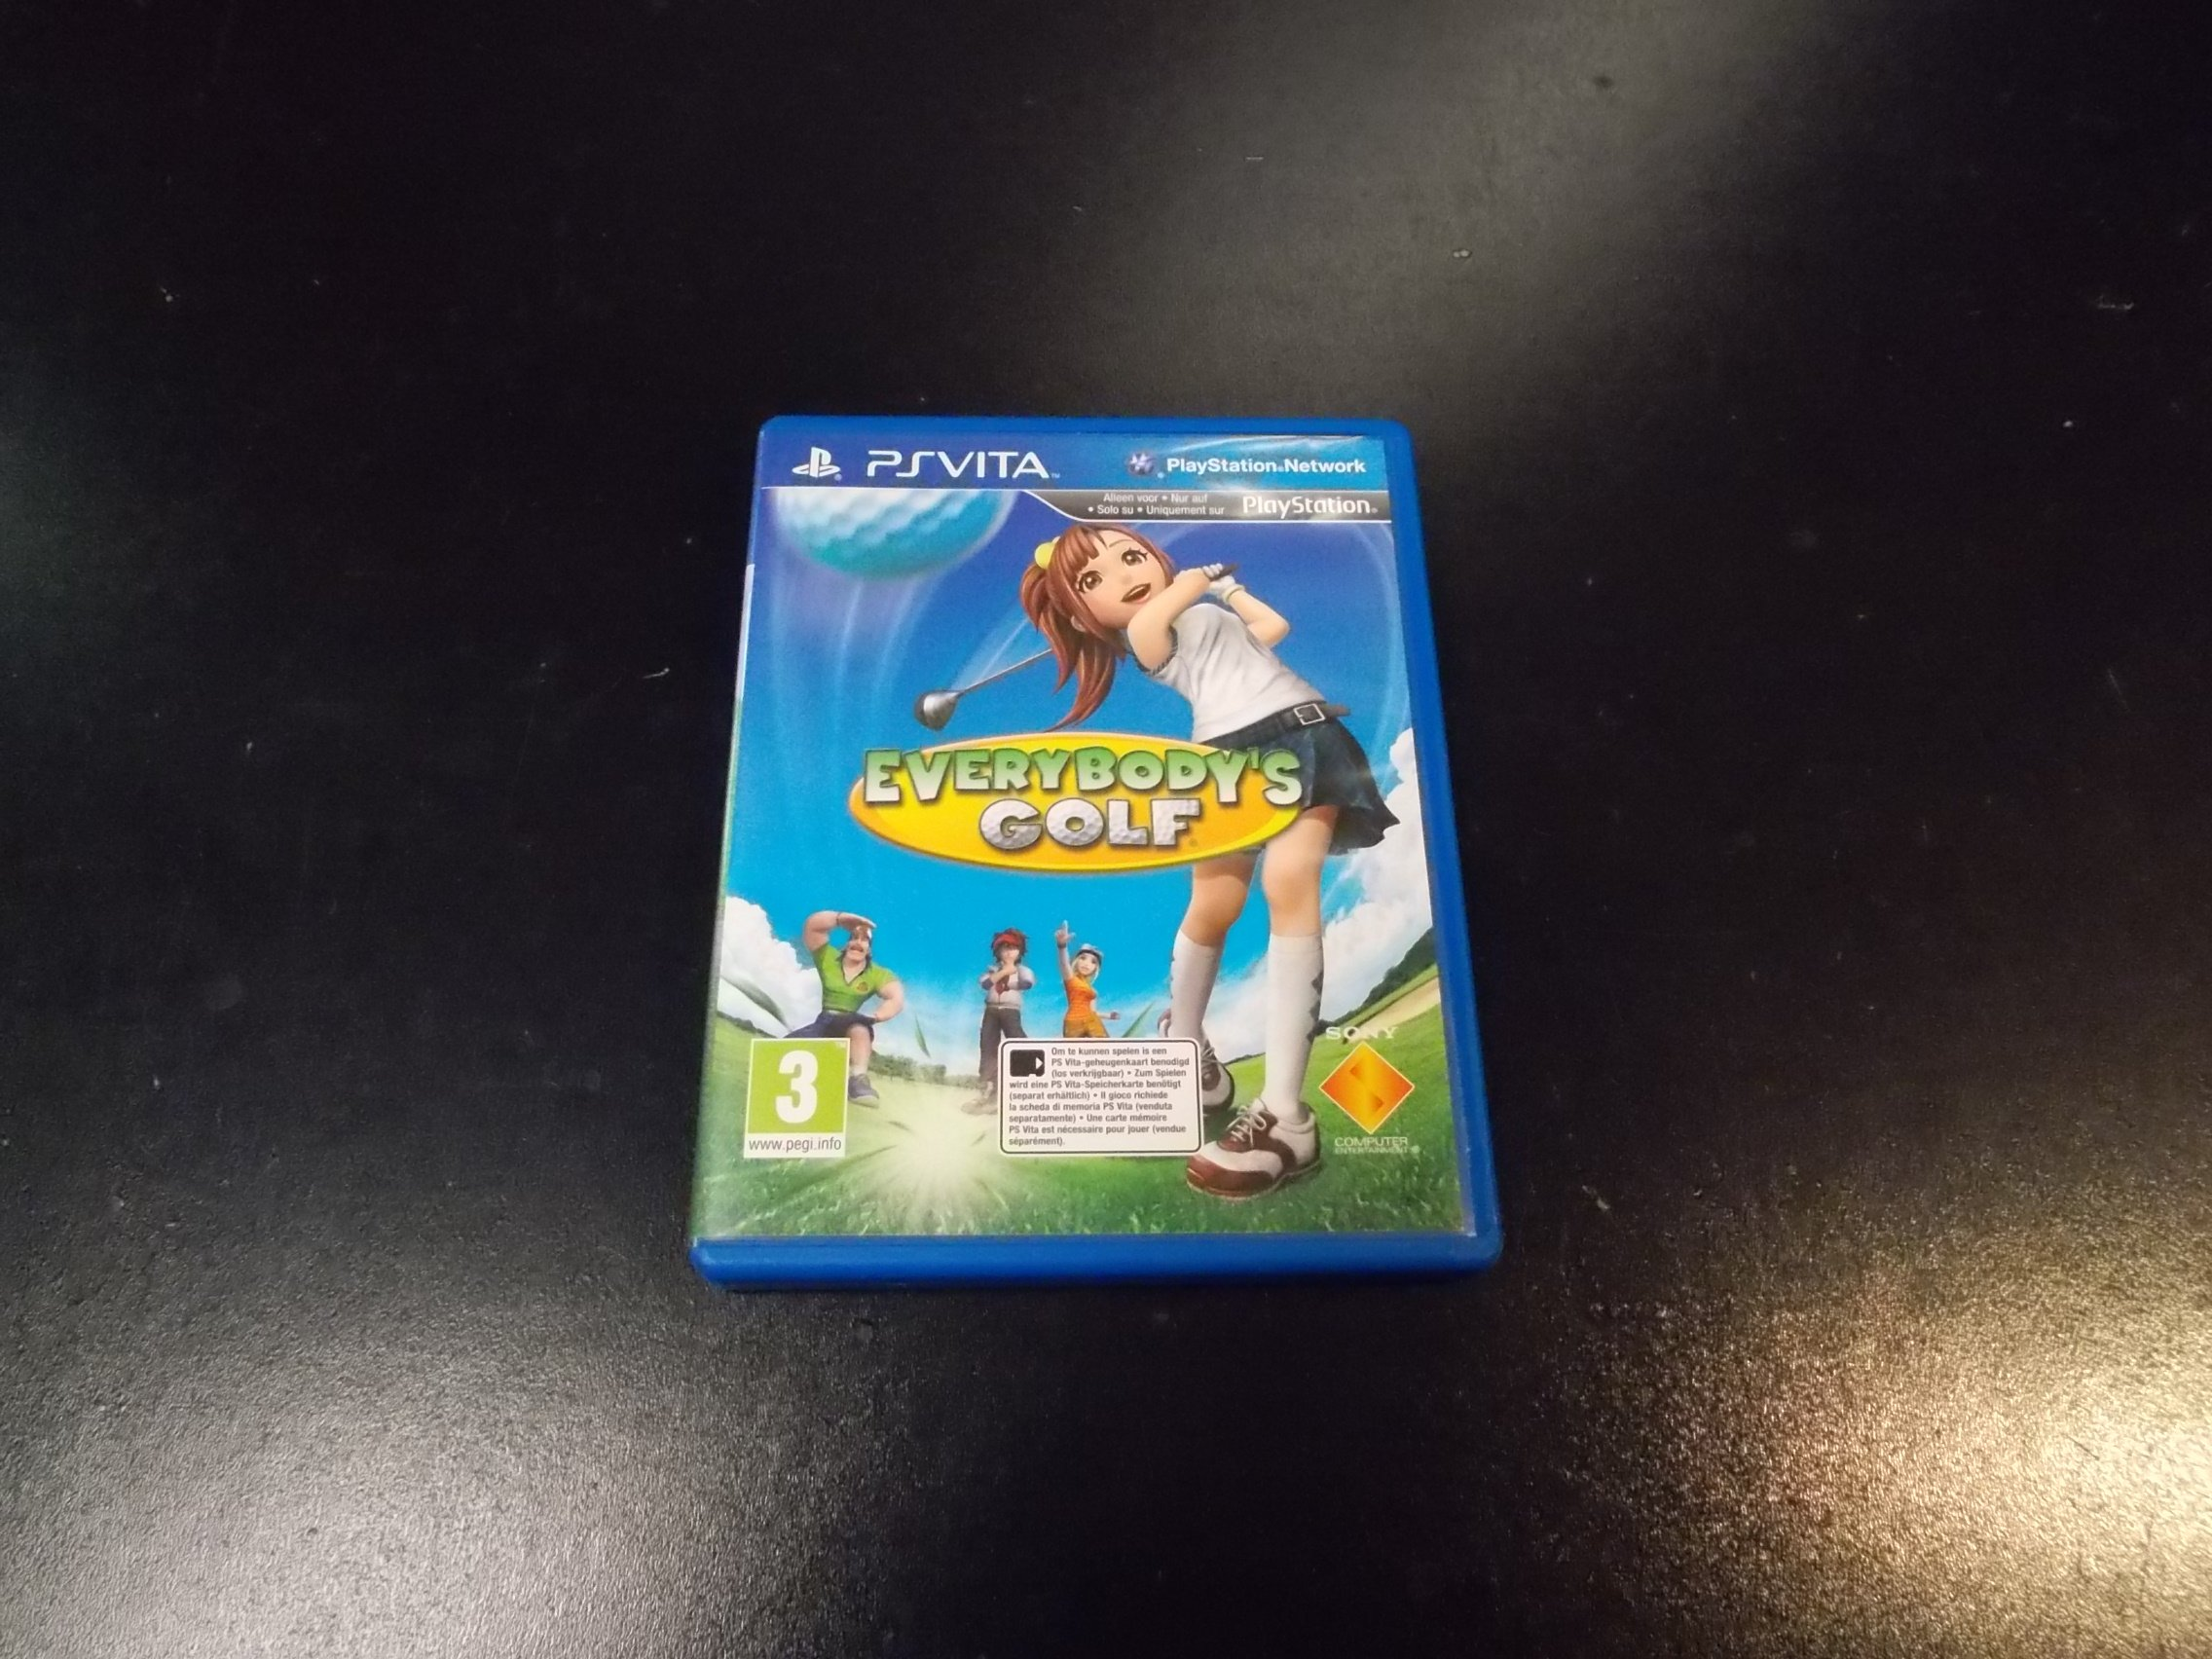 Everybodys Golf - GRA Ps Vita Sklep